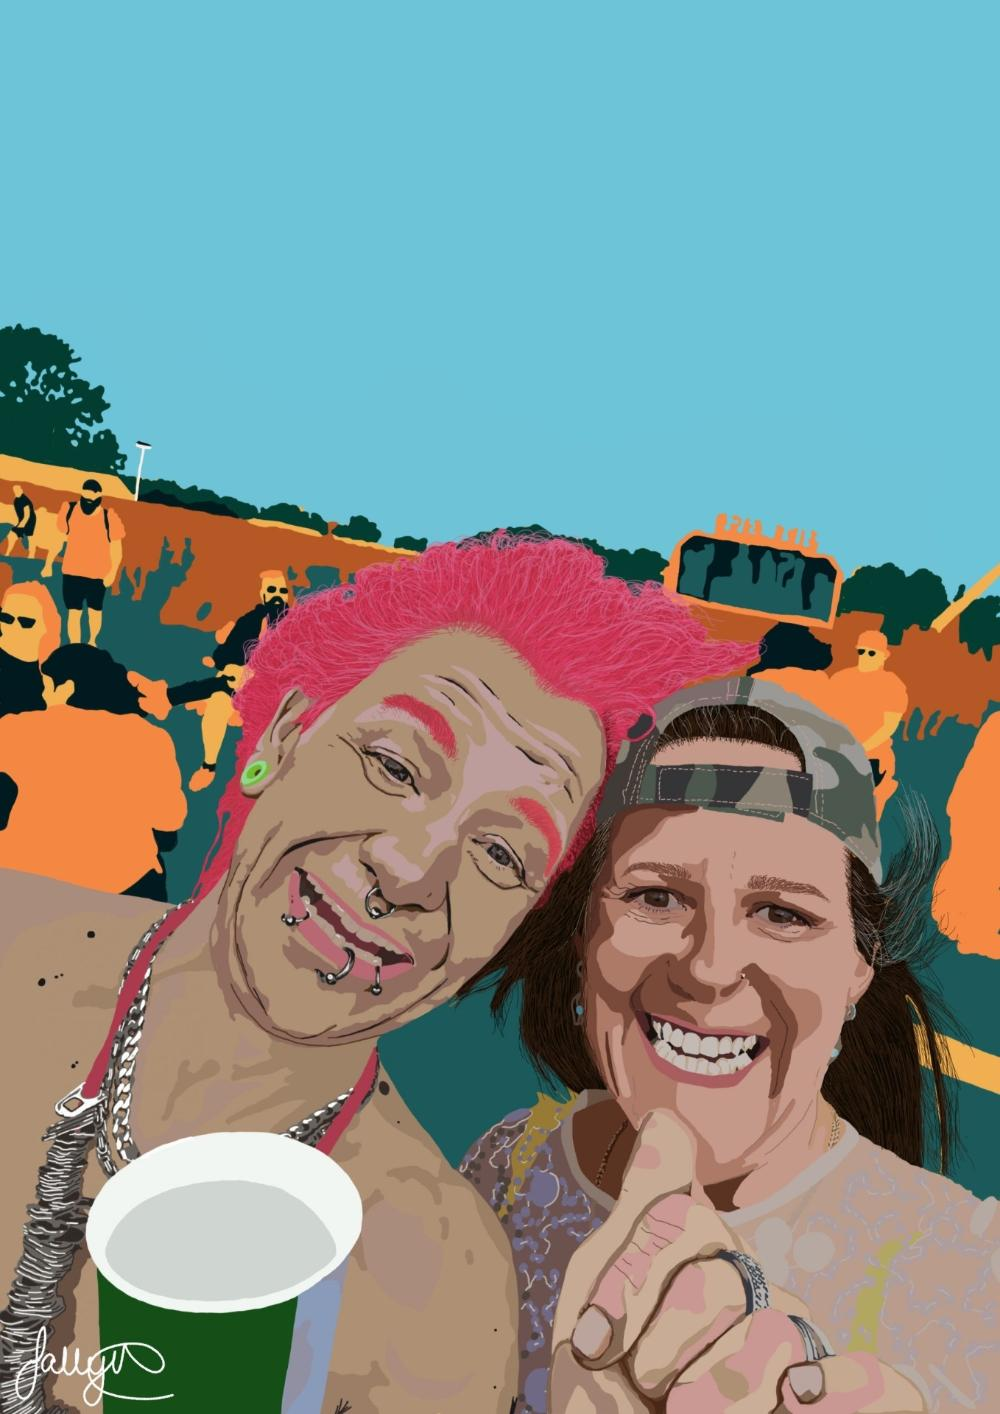 Bold artwork of a woman posing for selfie with a pink-haired man at Rockprest festival